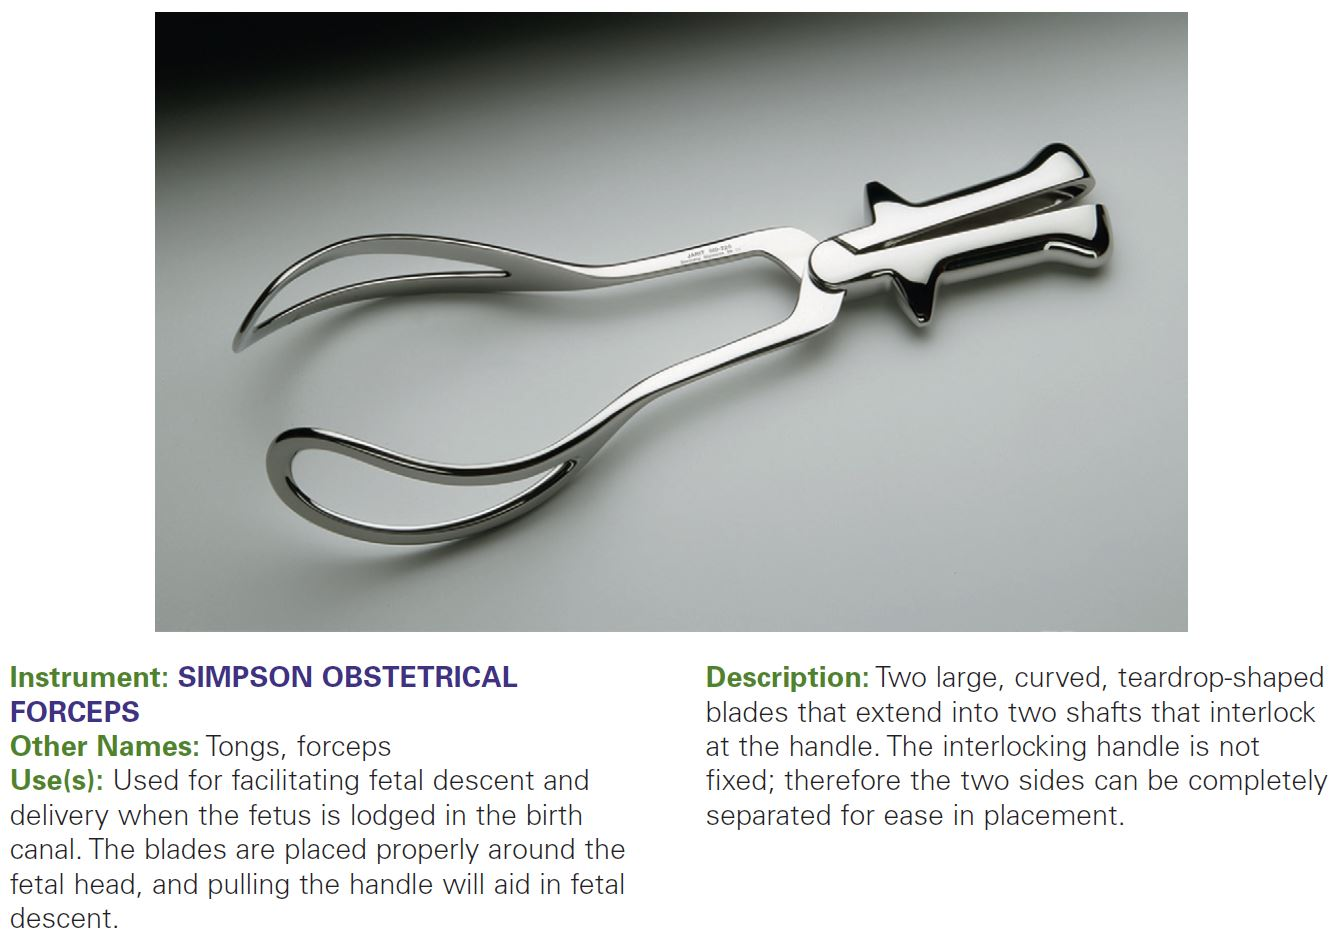 SIMPSON OBSTETRICAL FORCEPS